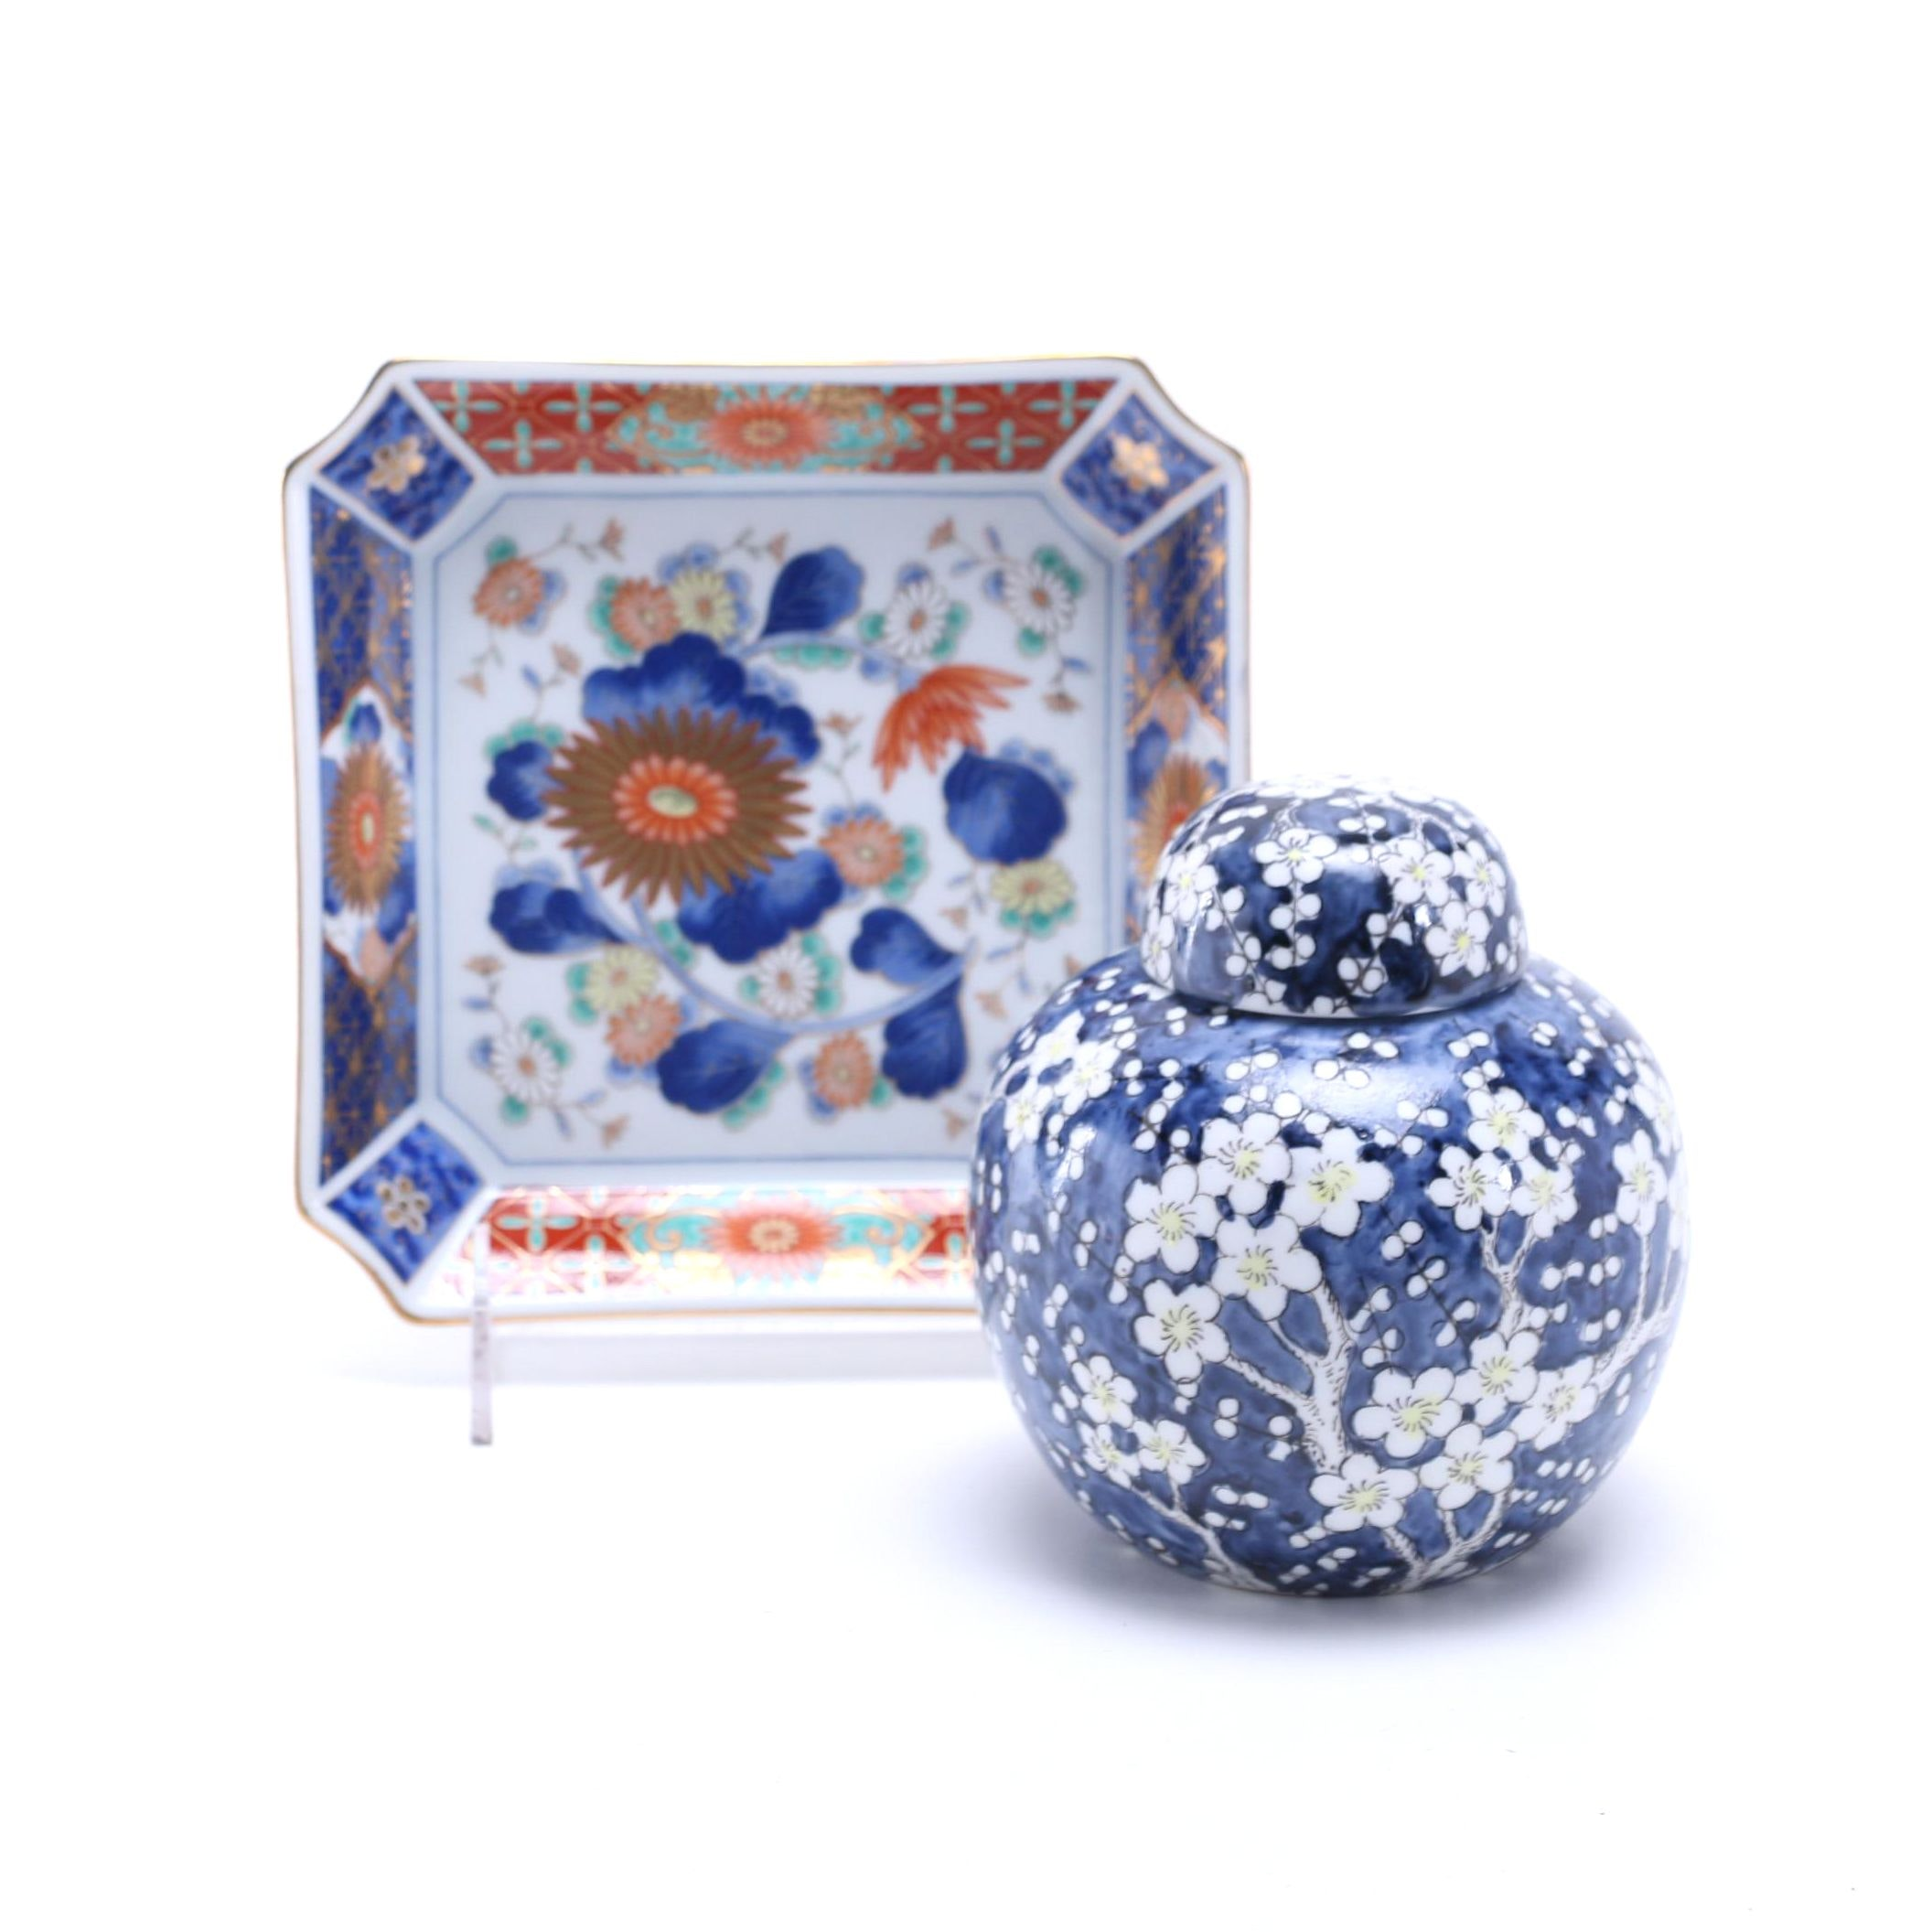 East Asian Hand Painted Porcelain Jar and Plate